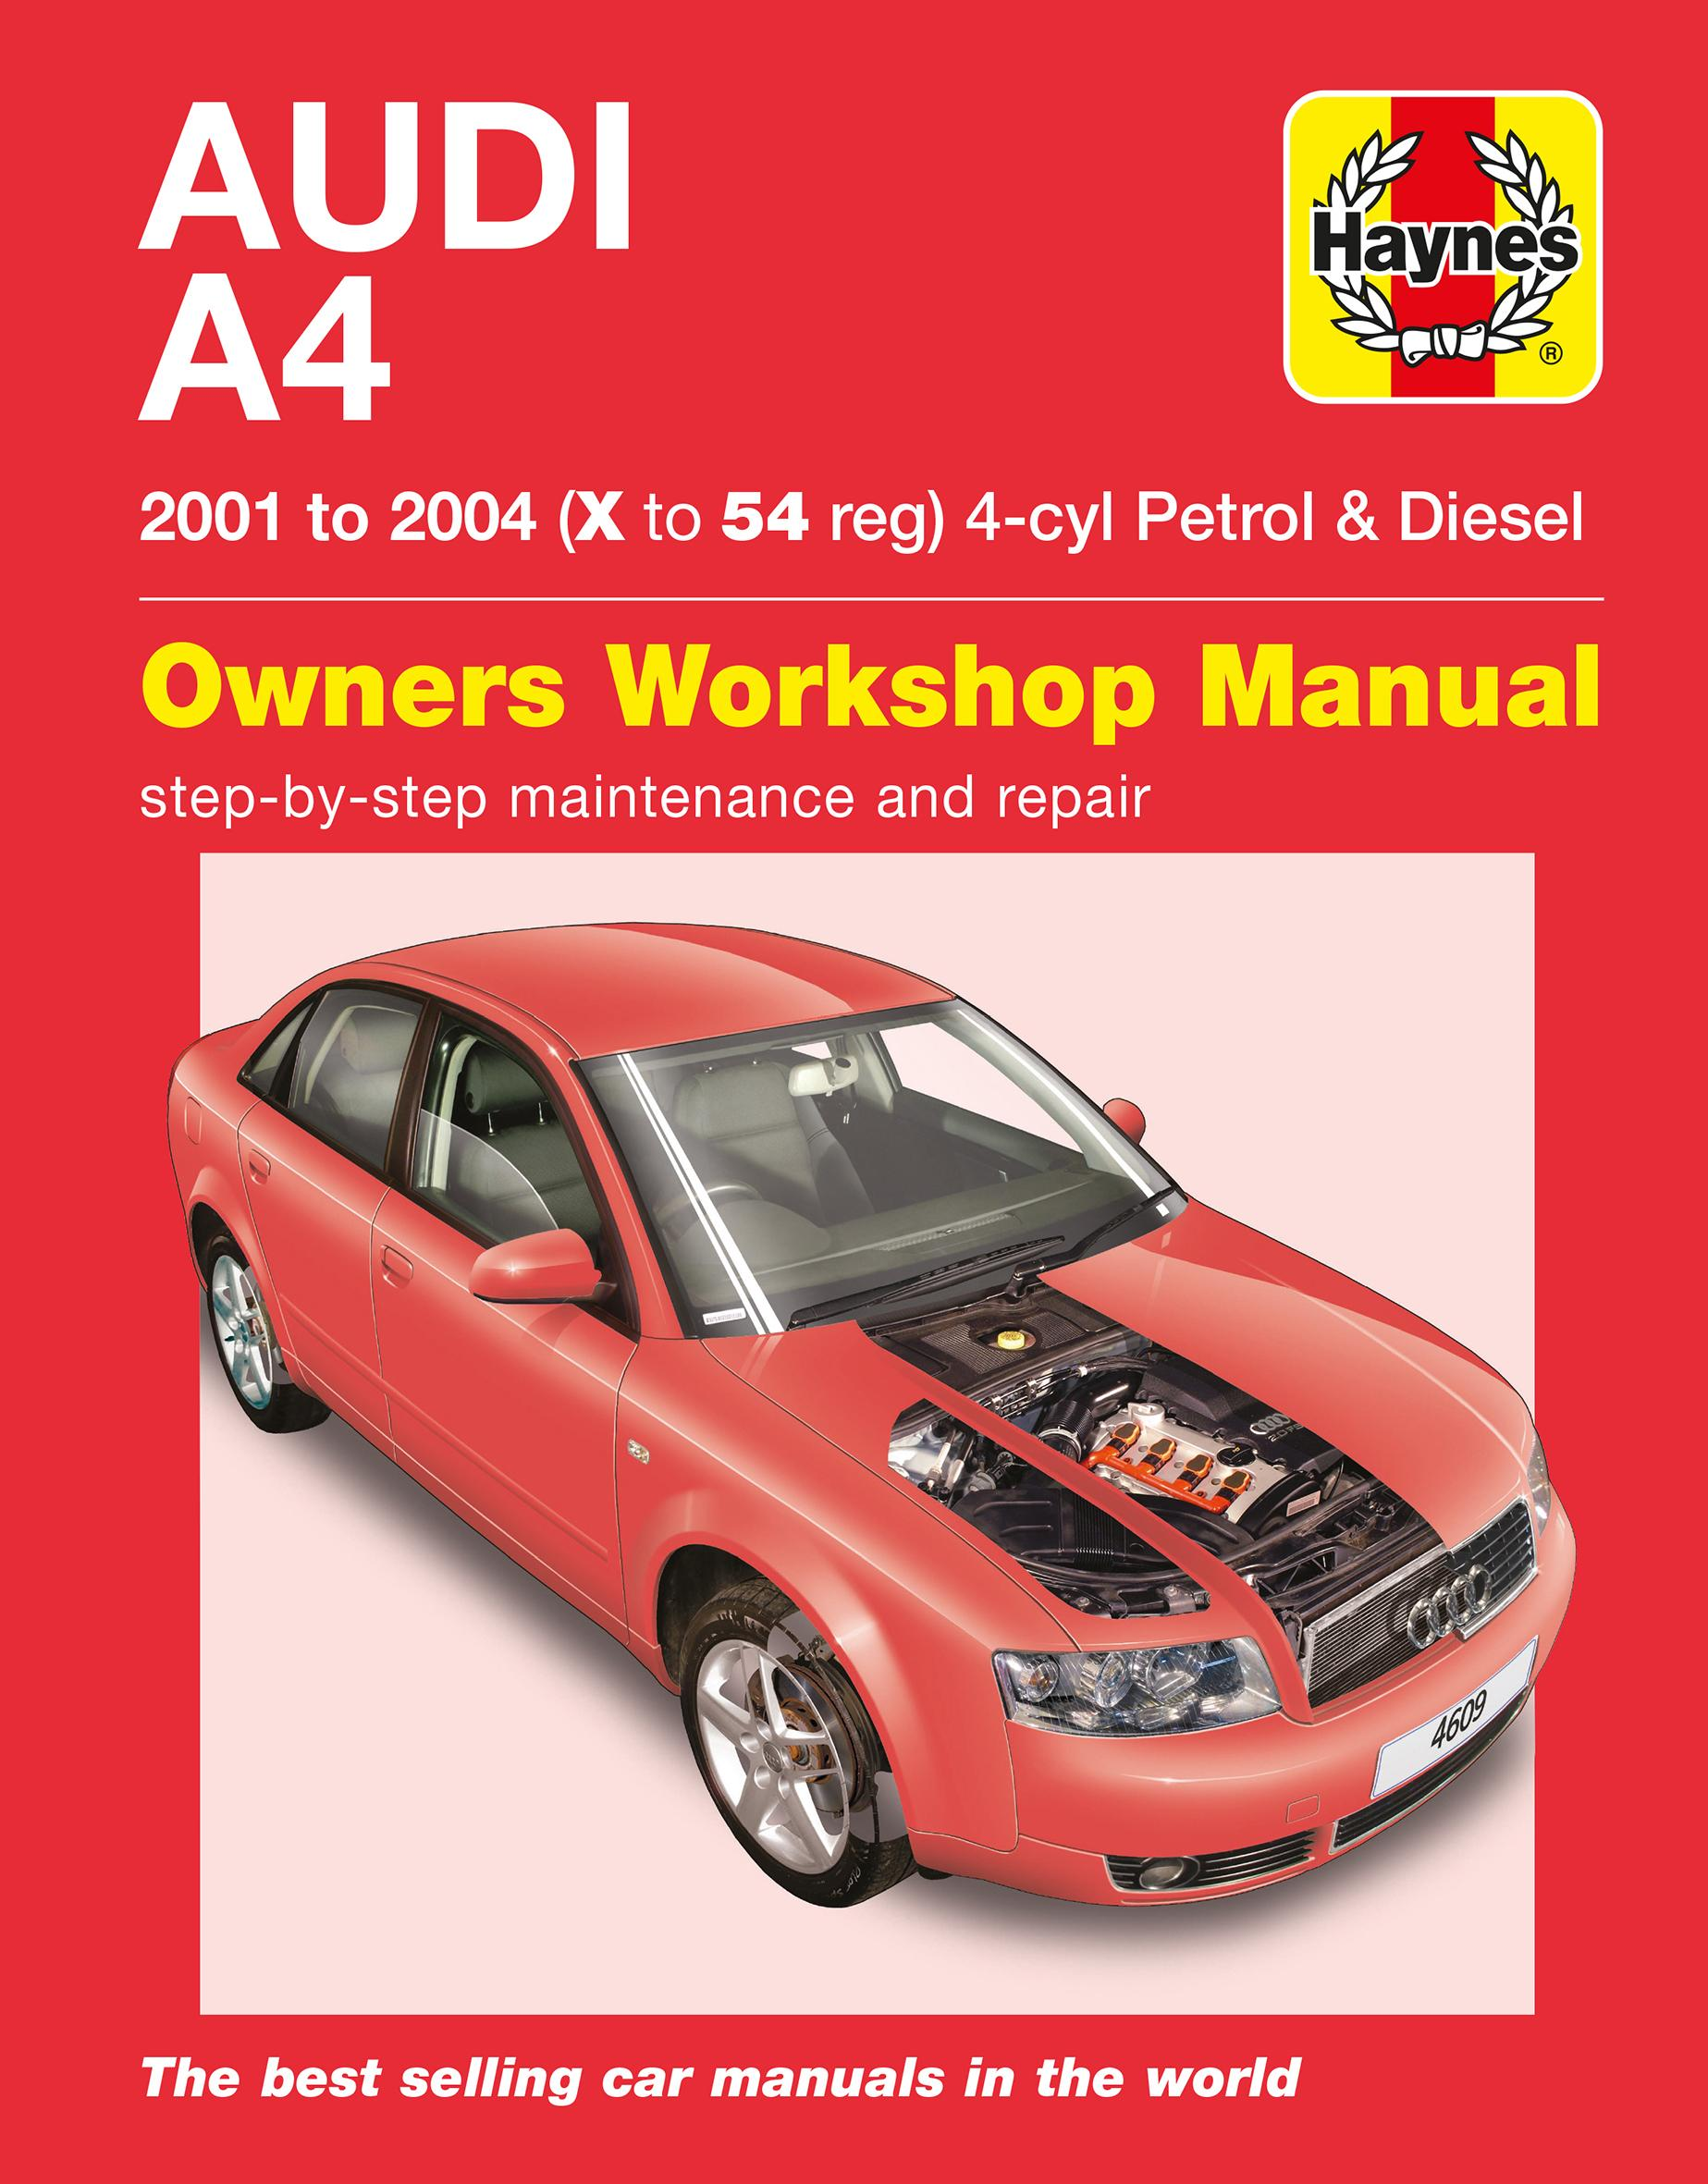 haynes audi a4 01 to 04 manual rh halfords com audi a4 b6 workshop manual pdf free audi a4 b6 workshop manual pdf free